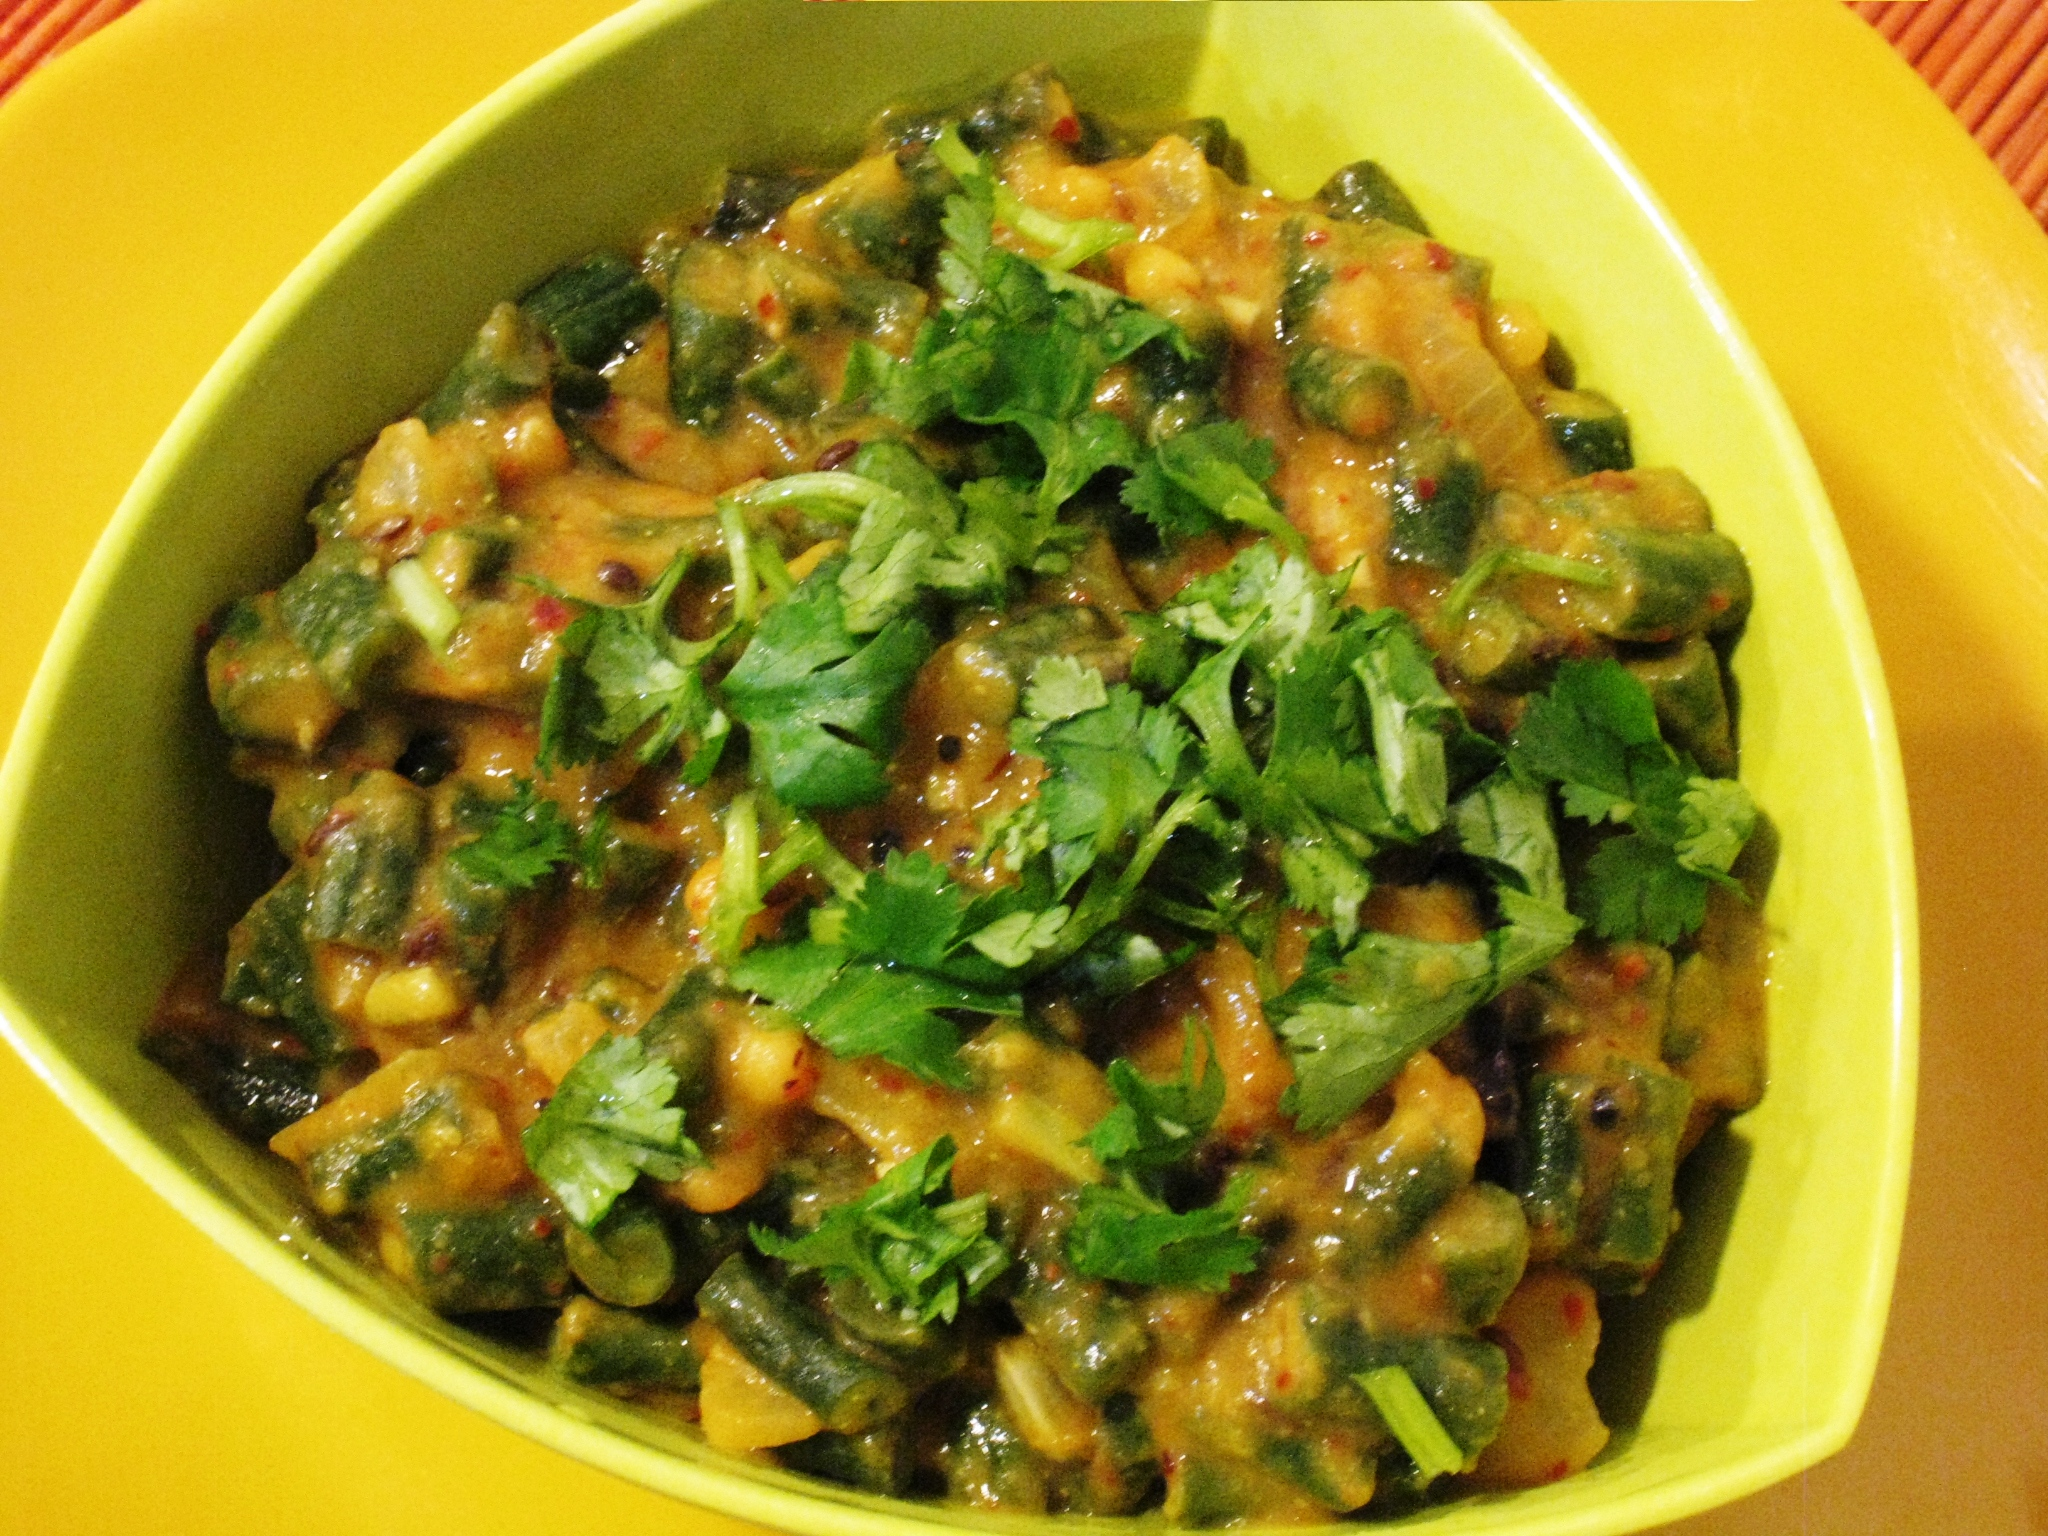 Snakebean curry vegrecipes4u snakebean curry is a thick gravy curry that goes well with indian flatbreads like phulka snakebeans so called because of their length or asparagus beans forumfinder Images